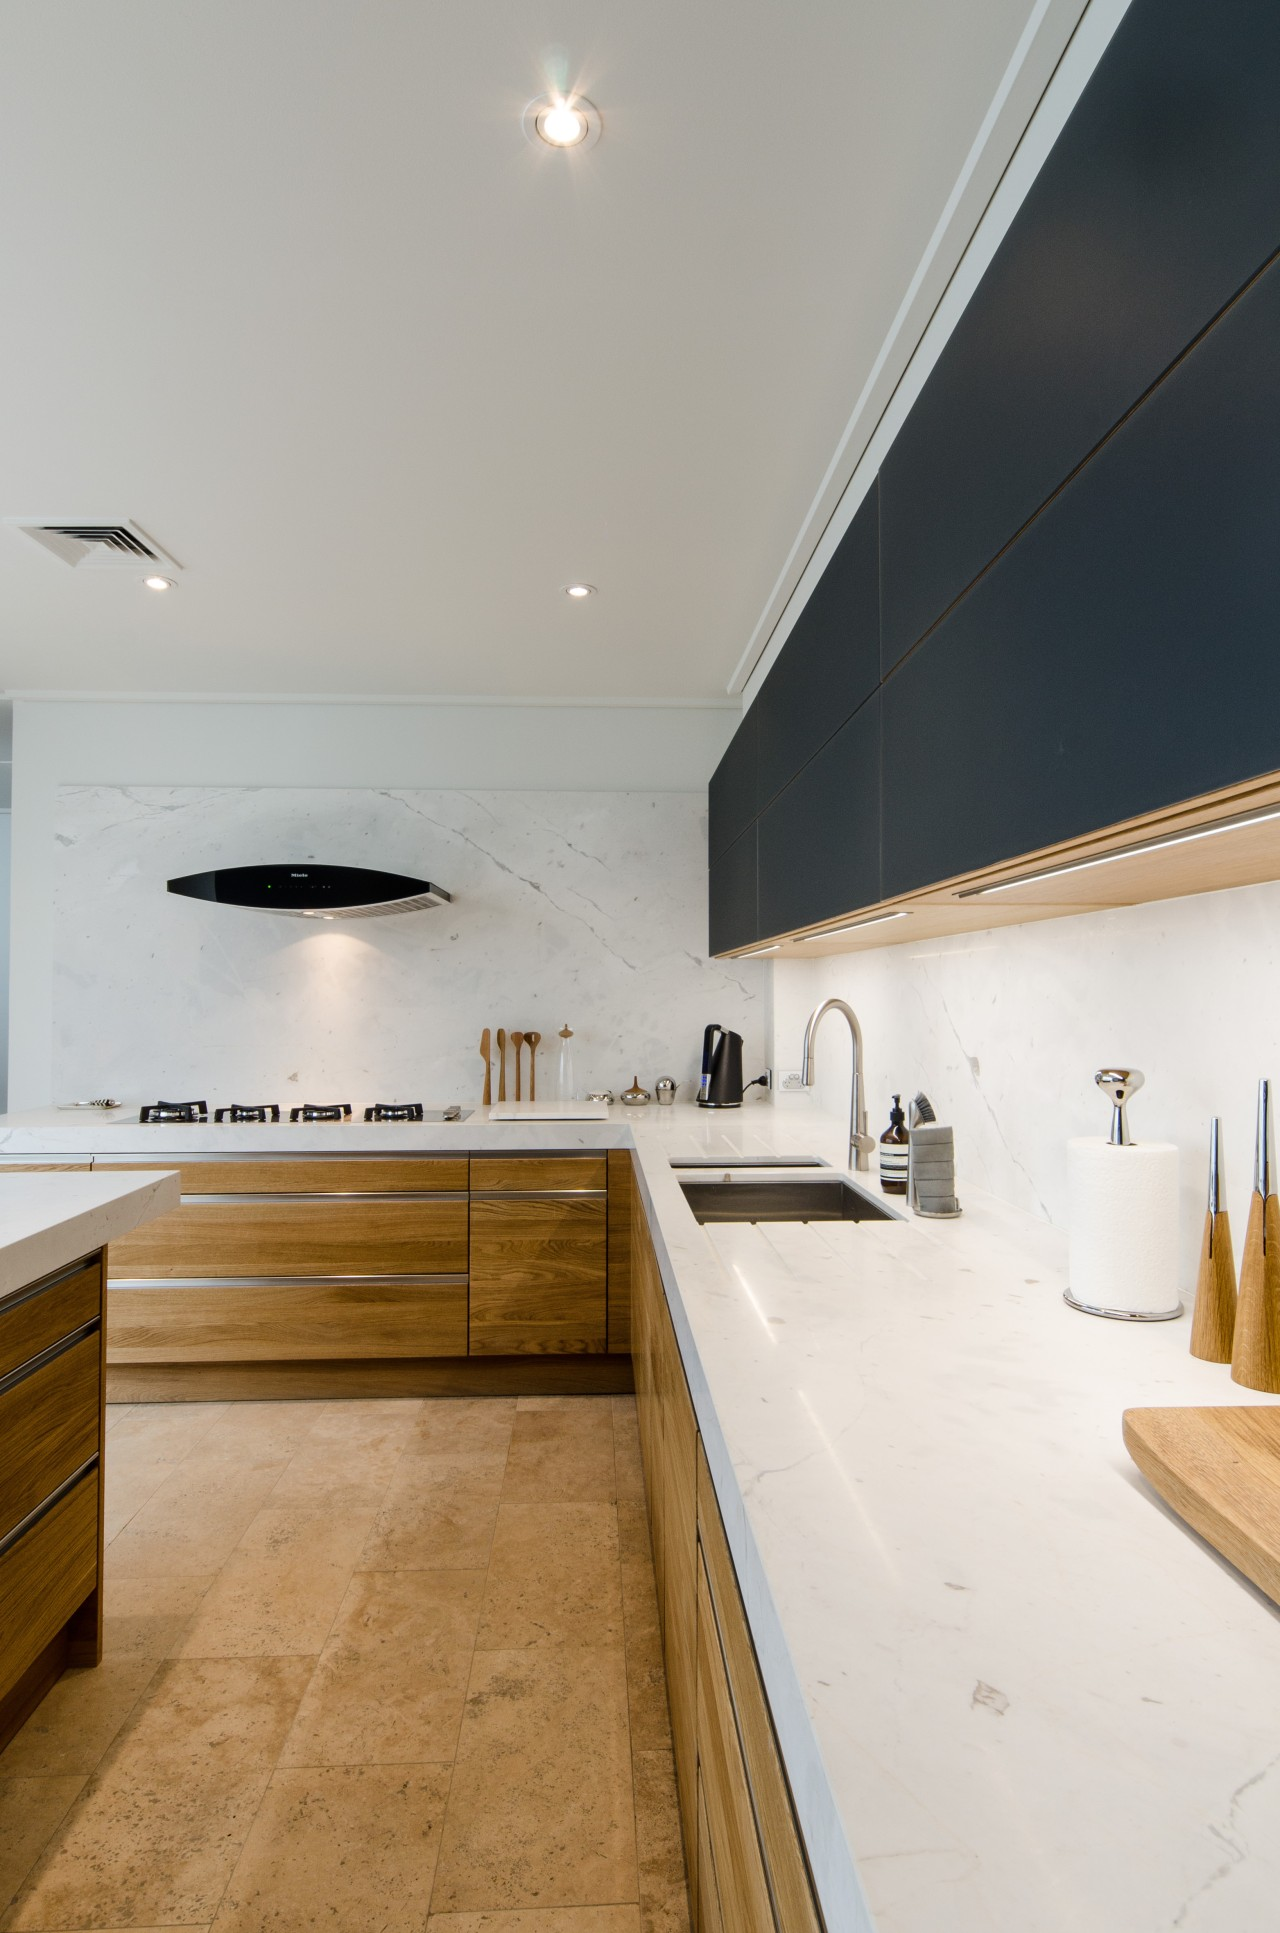 The experienced designers at Pepper Design can help architecture, bathroom, cabinetry, ceiling, countertop, daylighting, floor, home, interior design, kitchen, room, sink, gray